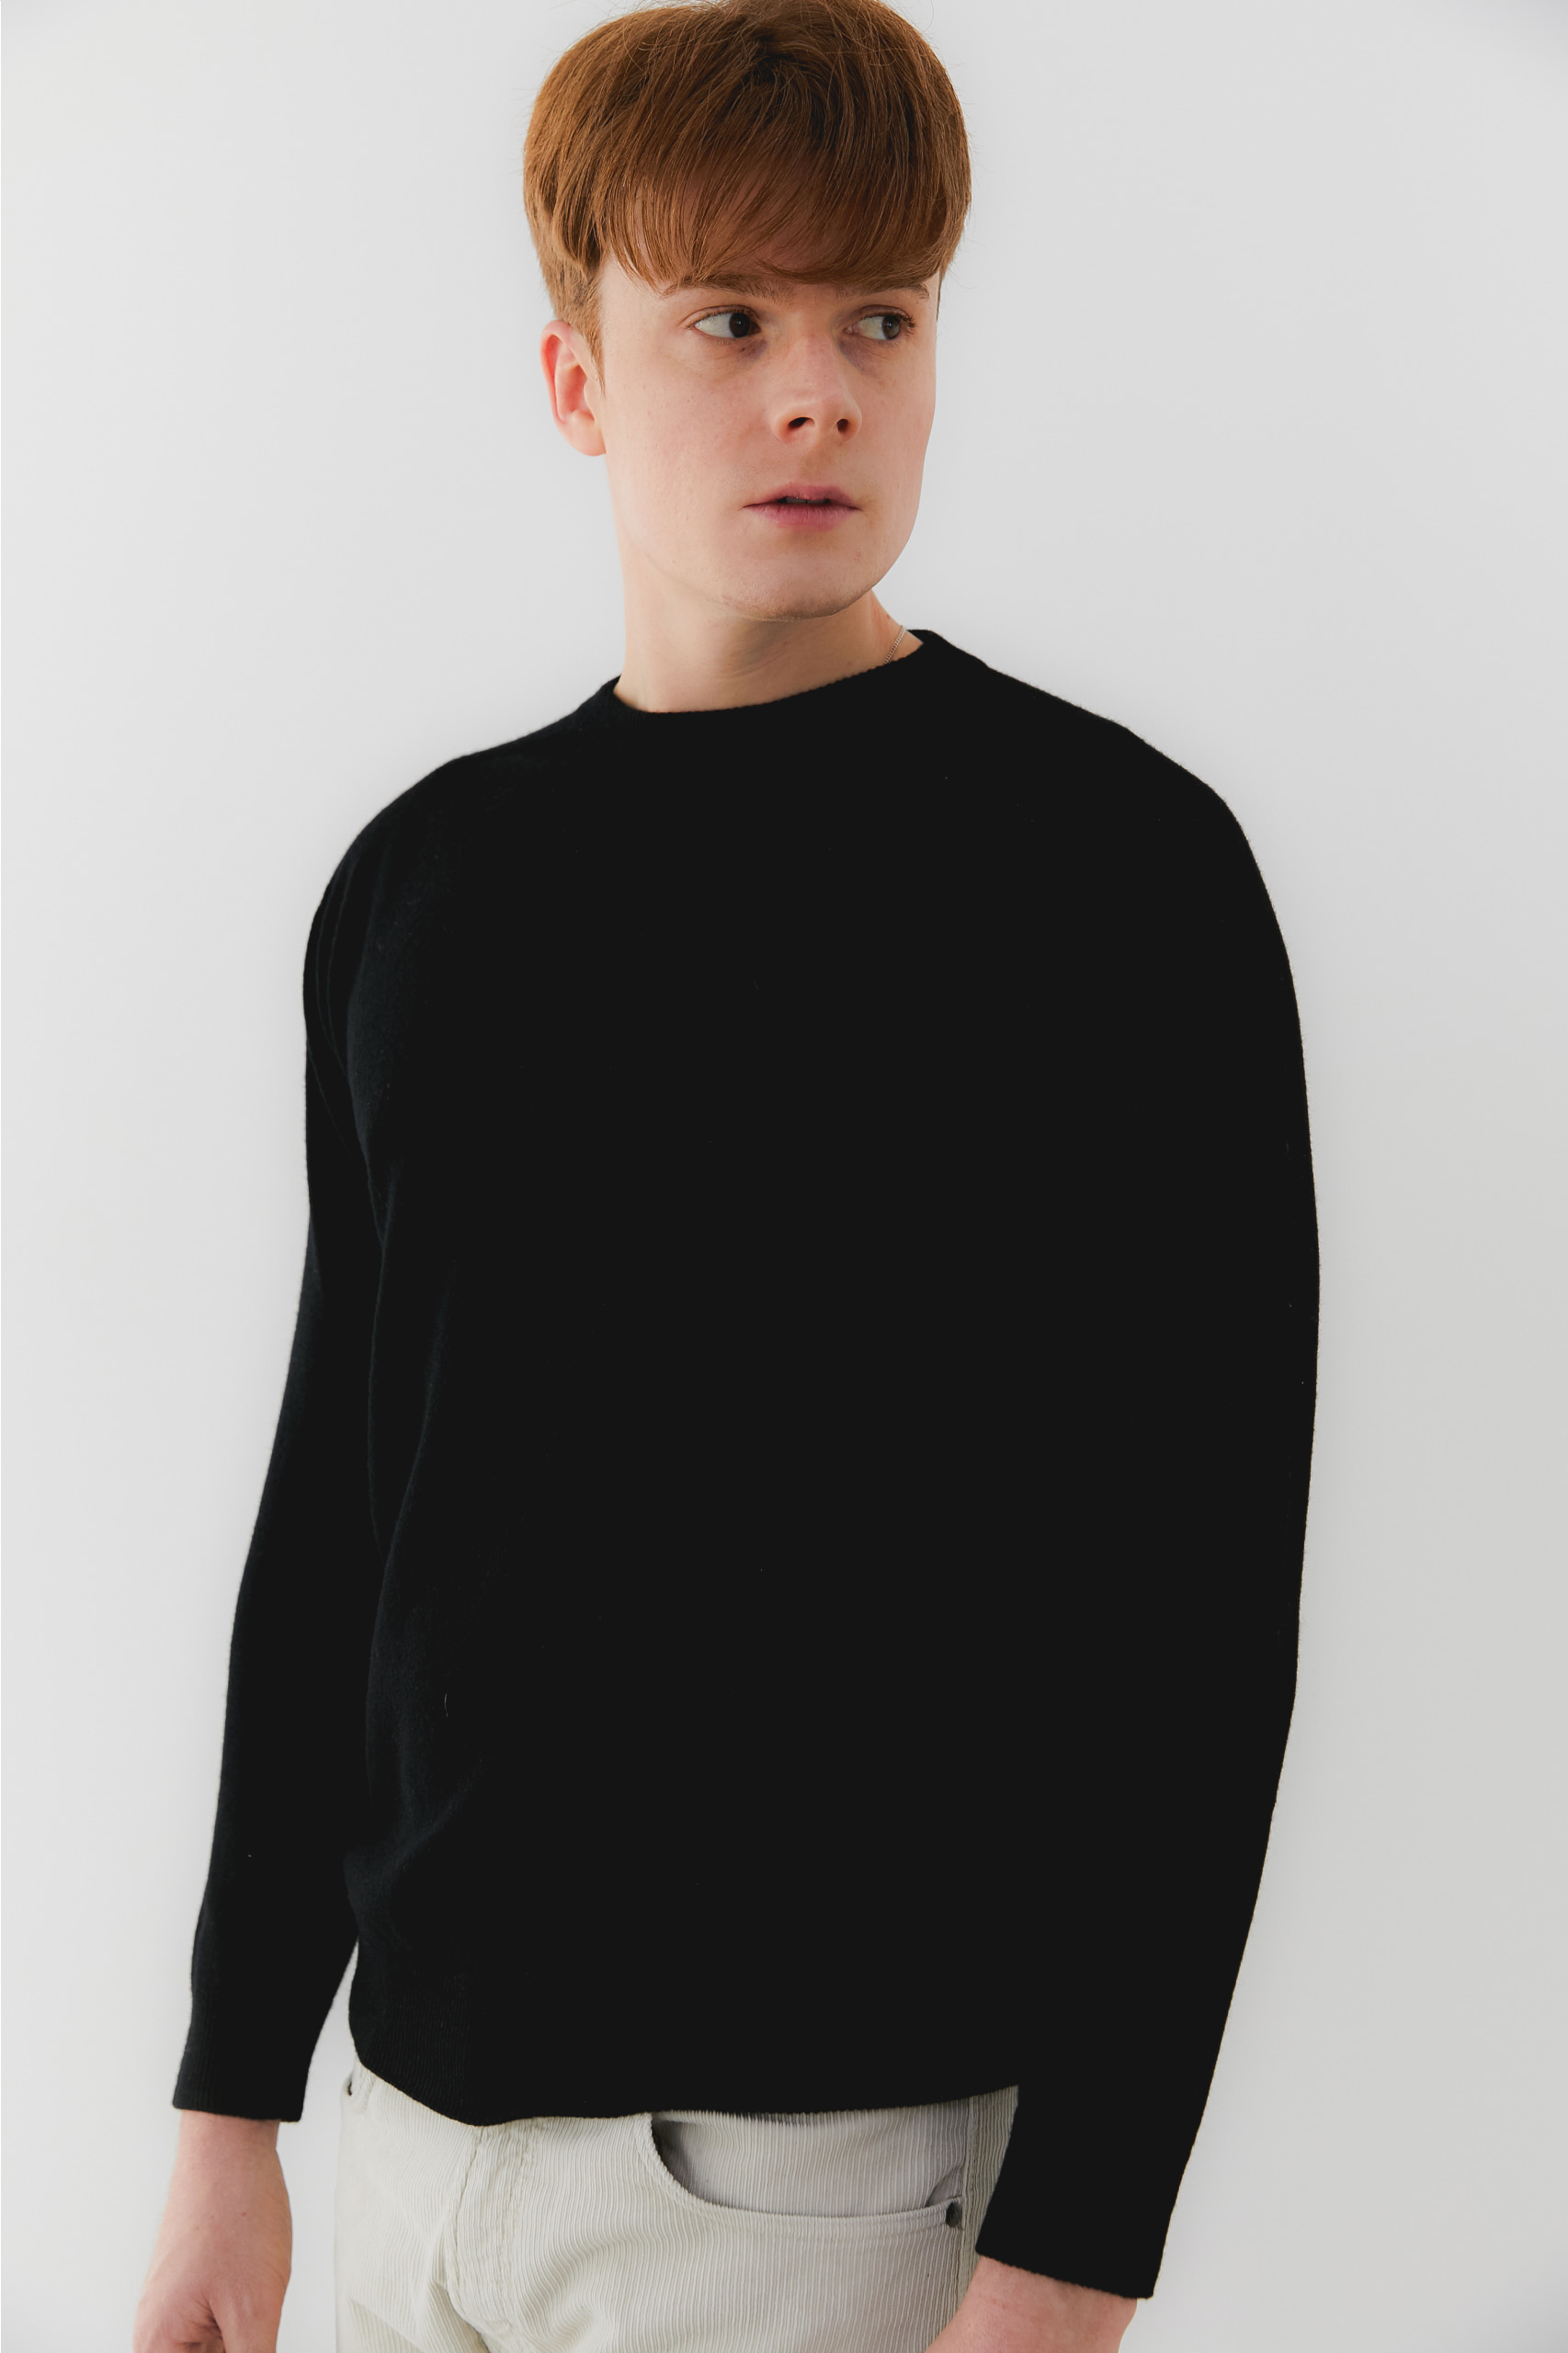 프리미엄 캐시미어 100 남성 라운드넥 스웨터 [Pure cashmere100 whole-garment knitting roundneck pullover - Black]